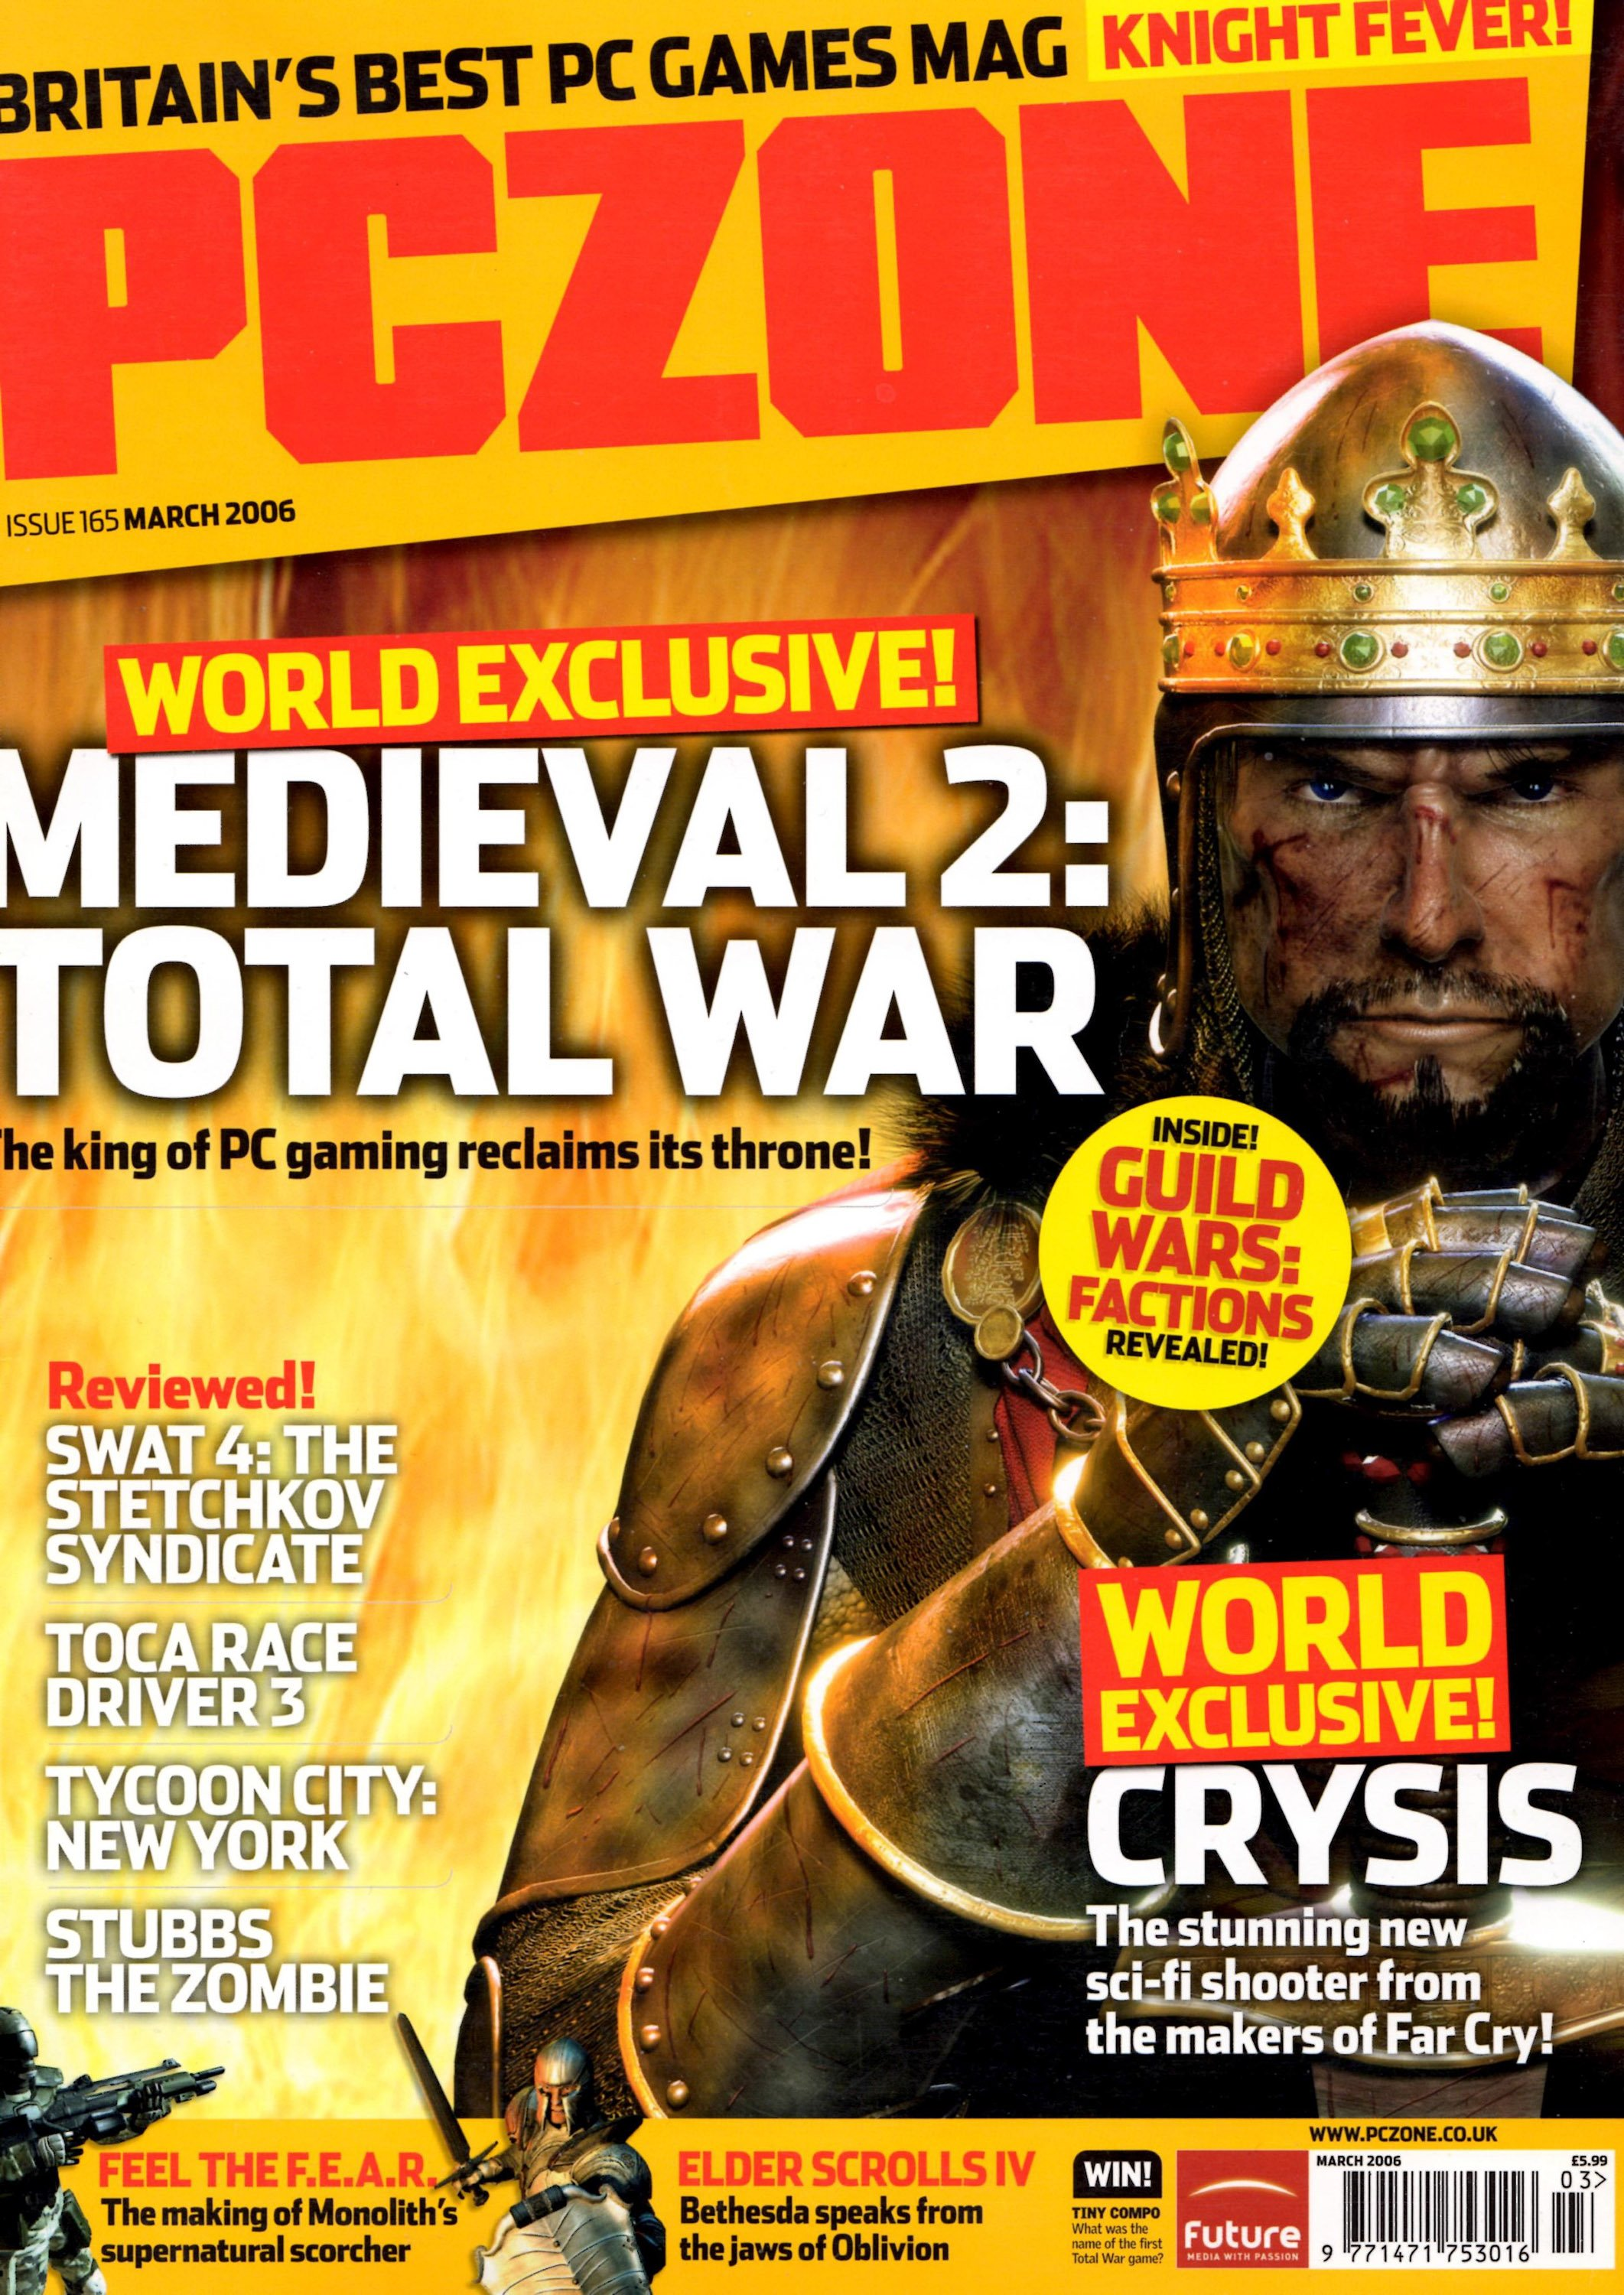 PC Zone Issue 165 (March 2006)